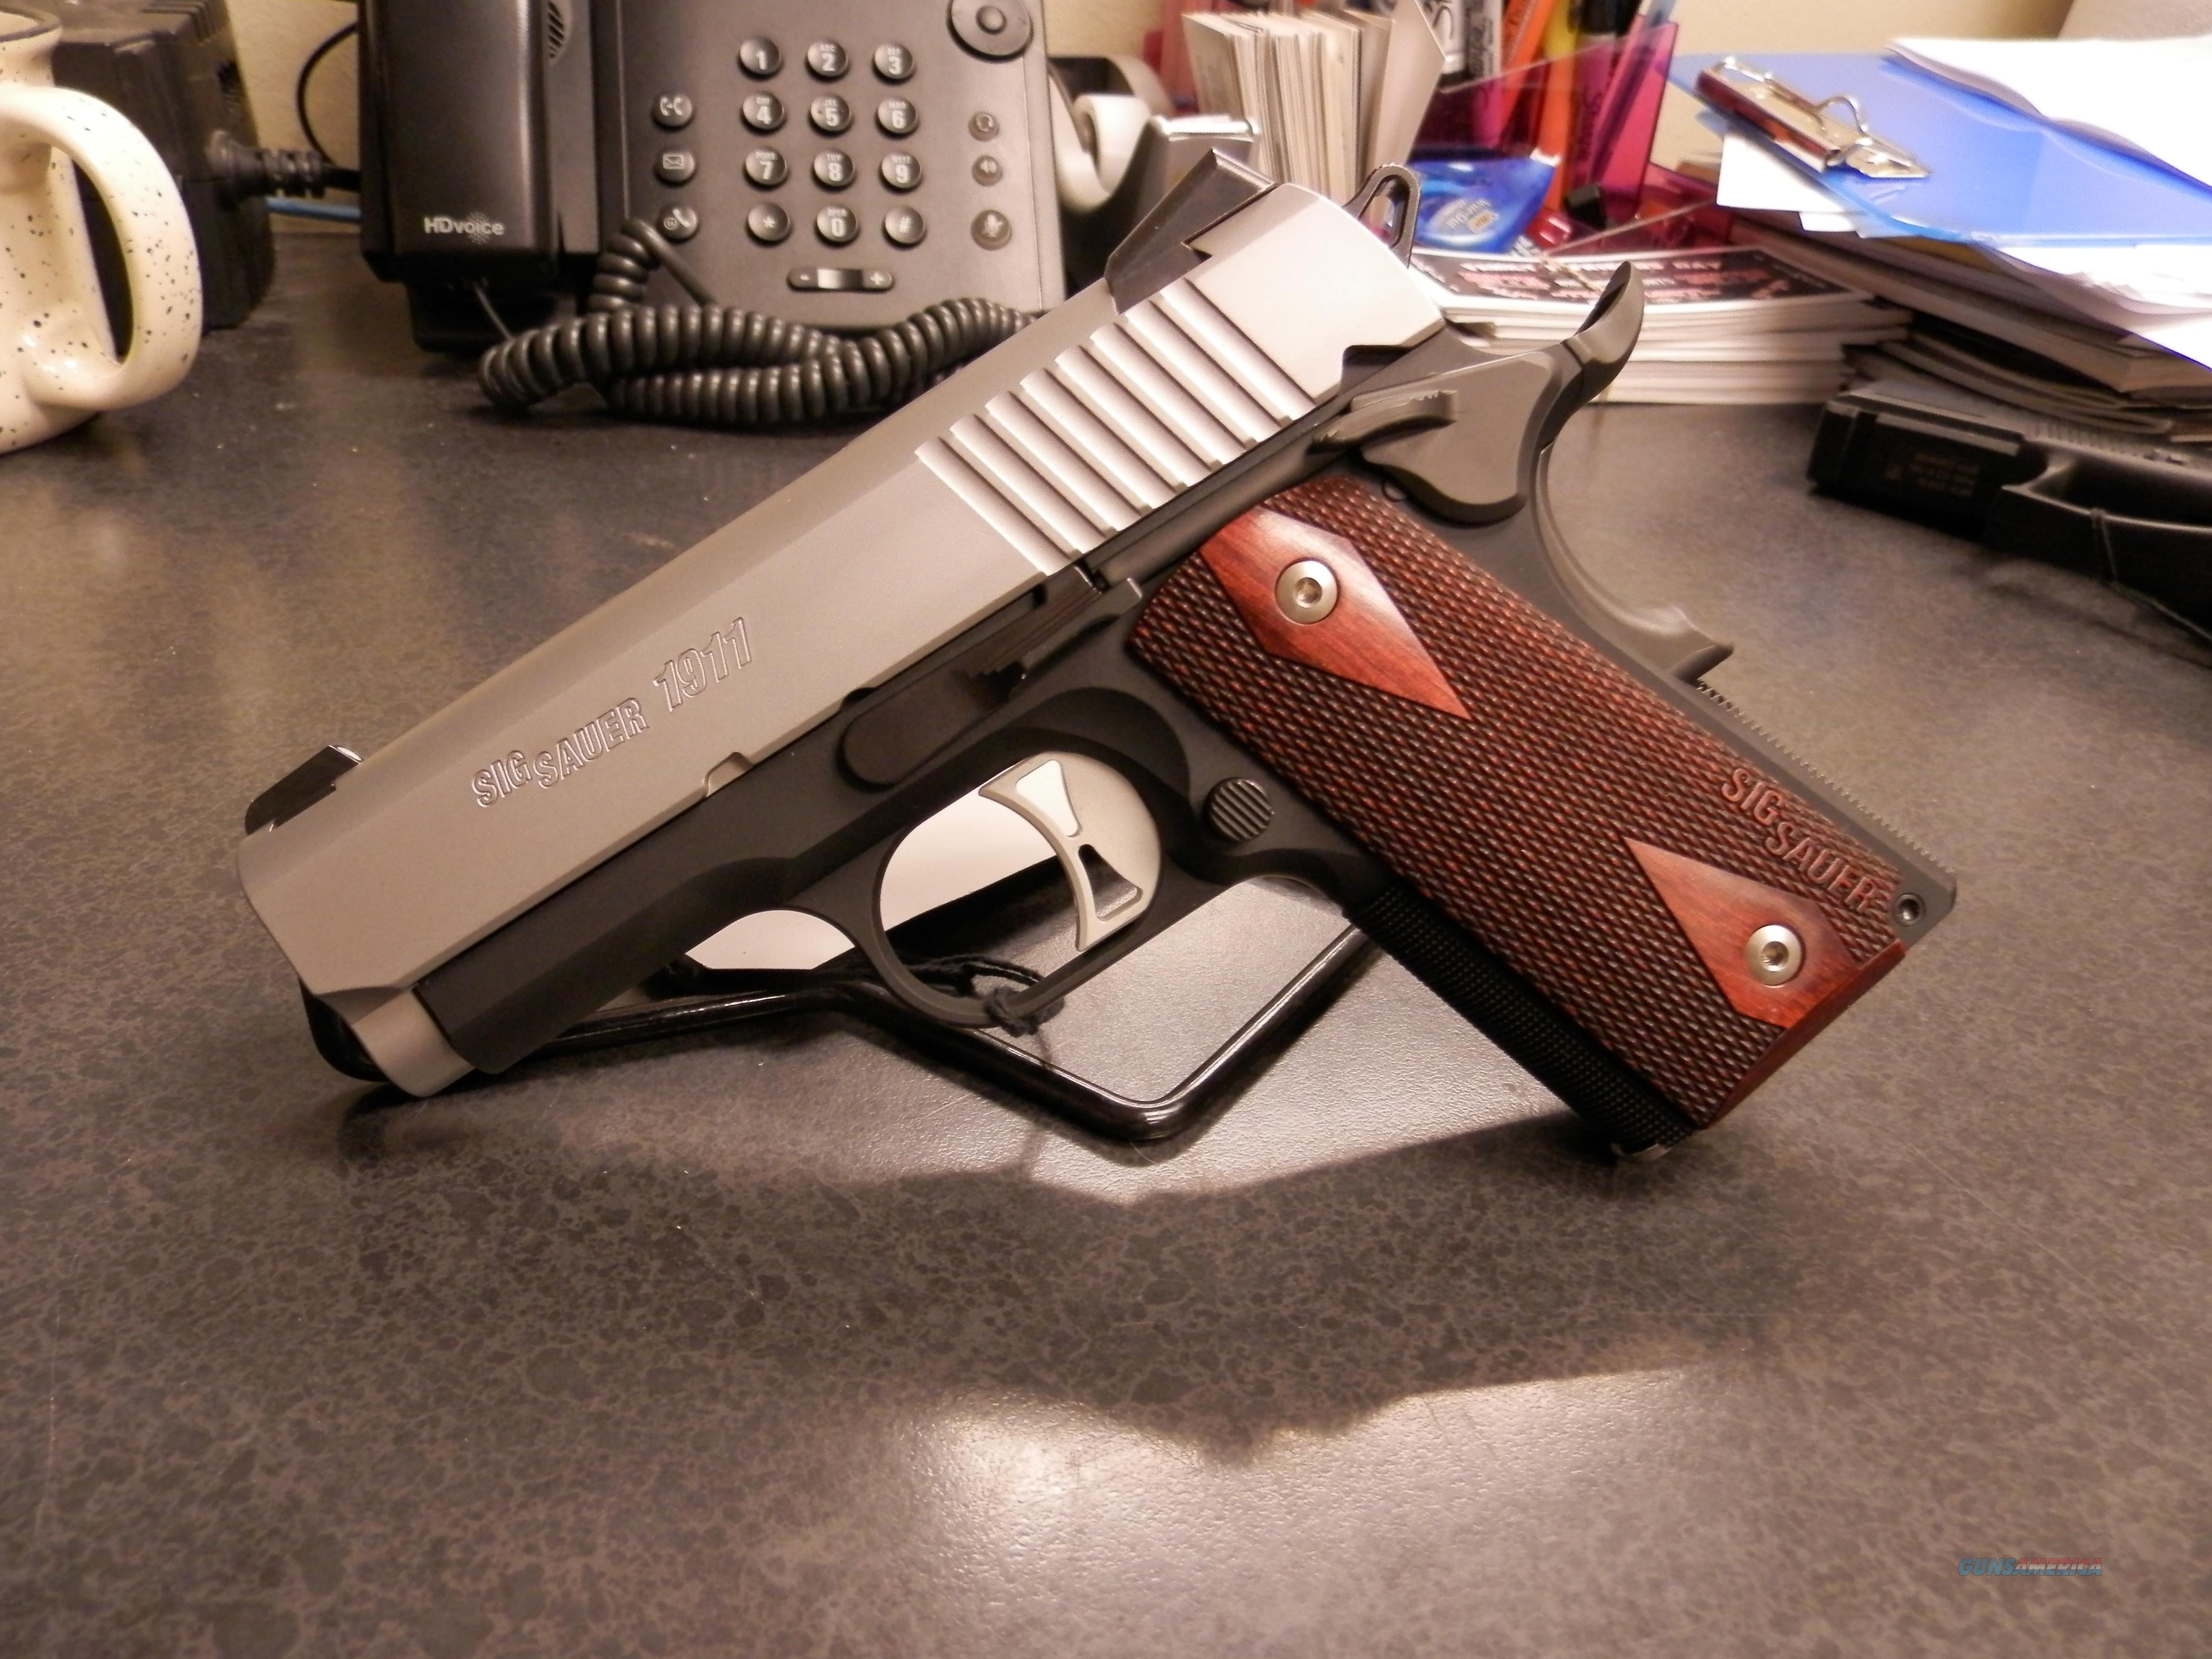 SIG SAUER 1911 ULTRA BI-TONE W/ROSEWOOD GRIPS 9MM  Guns > Pistols > Sig - Sauer/Sigarms Pistols > 1911